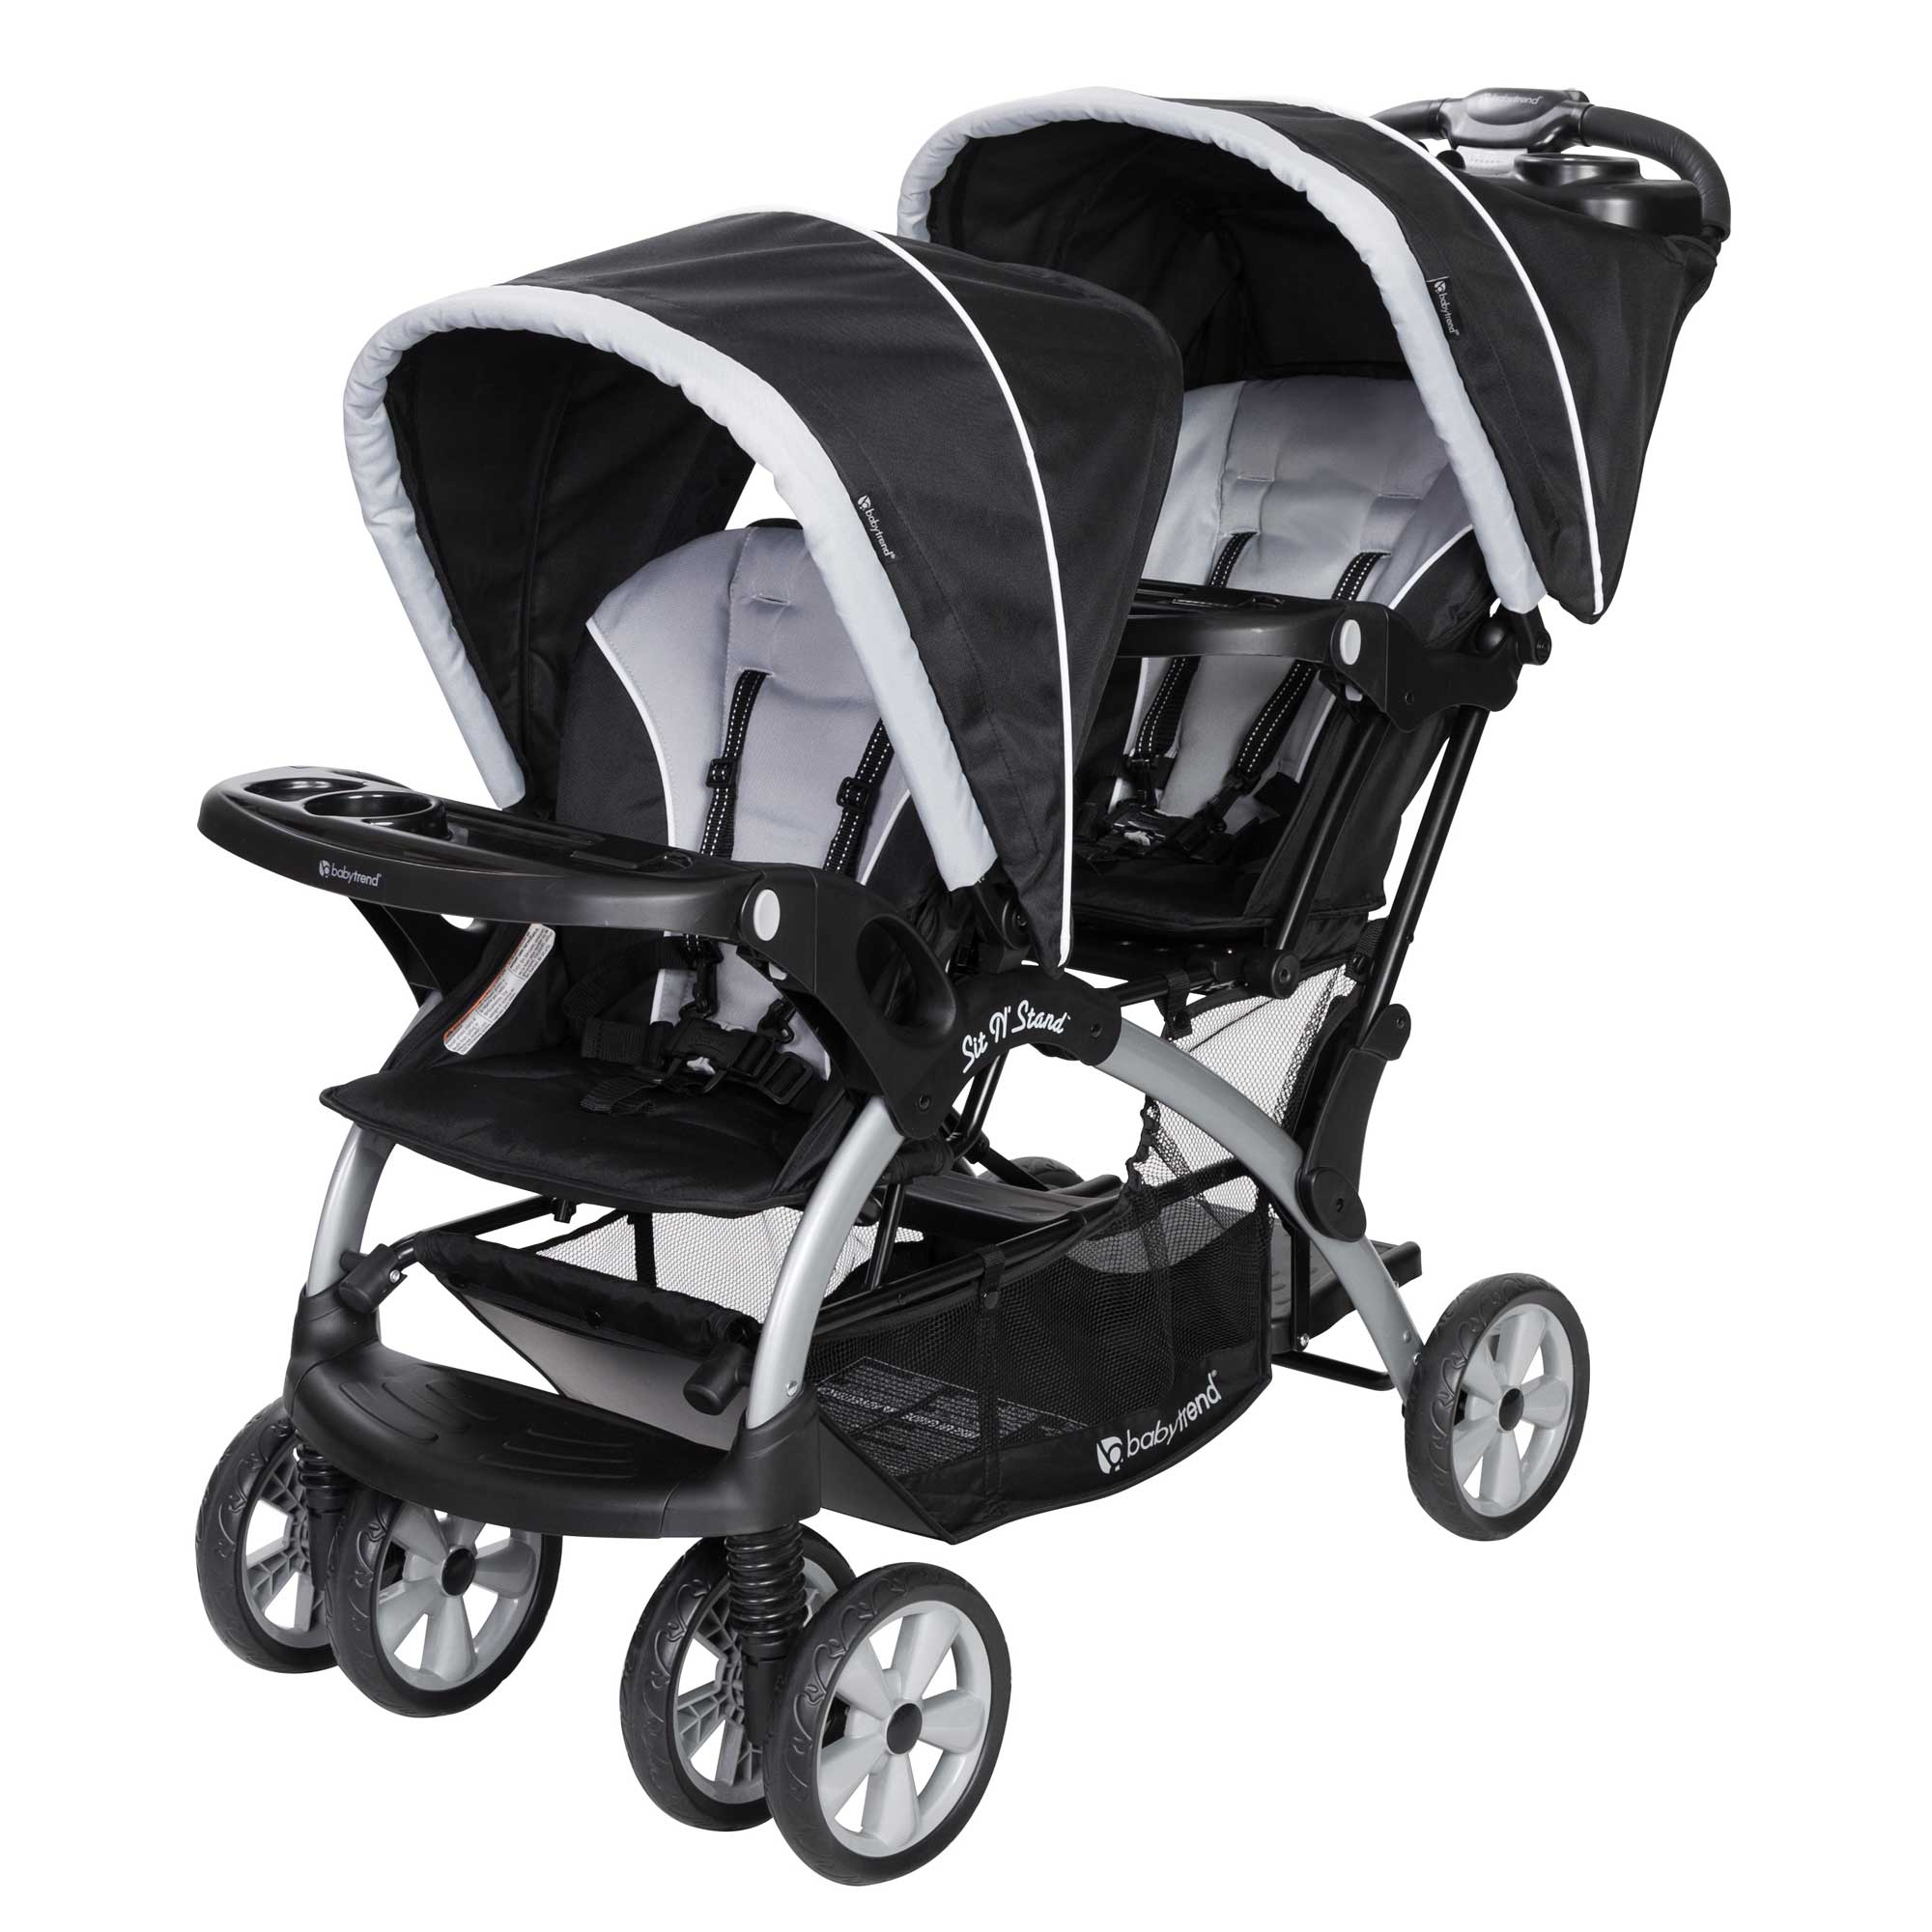 Baby Trend Sit N Stand Infant Toddler Twin Tandem 2 Seat Double Stroller, Stormy by Baby Trend